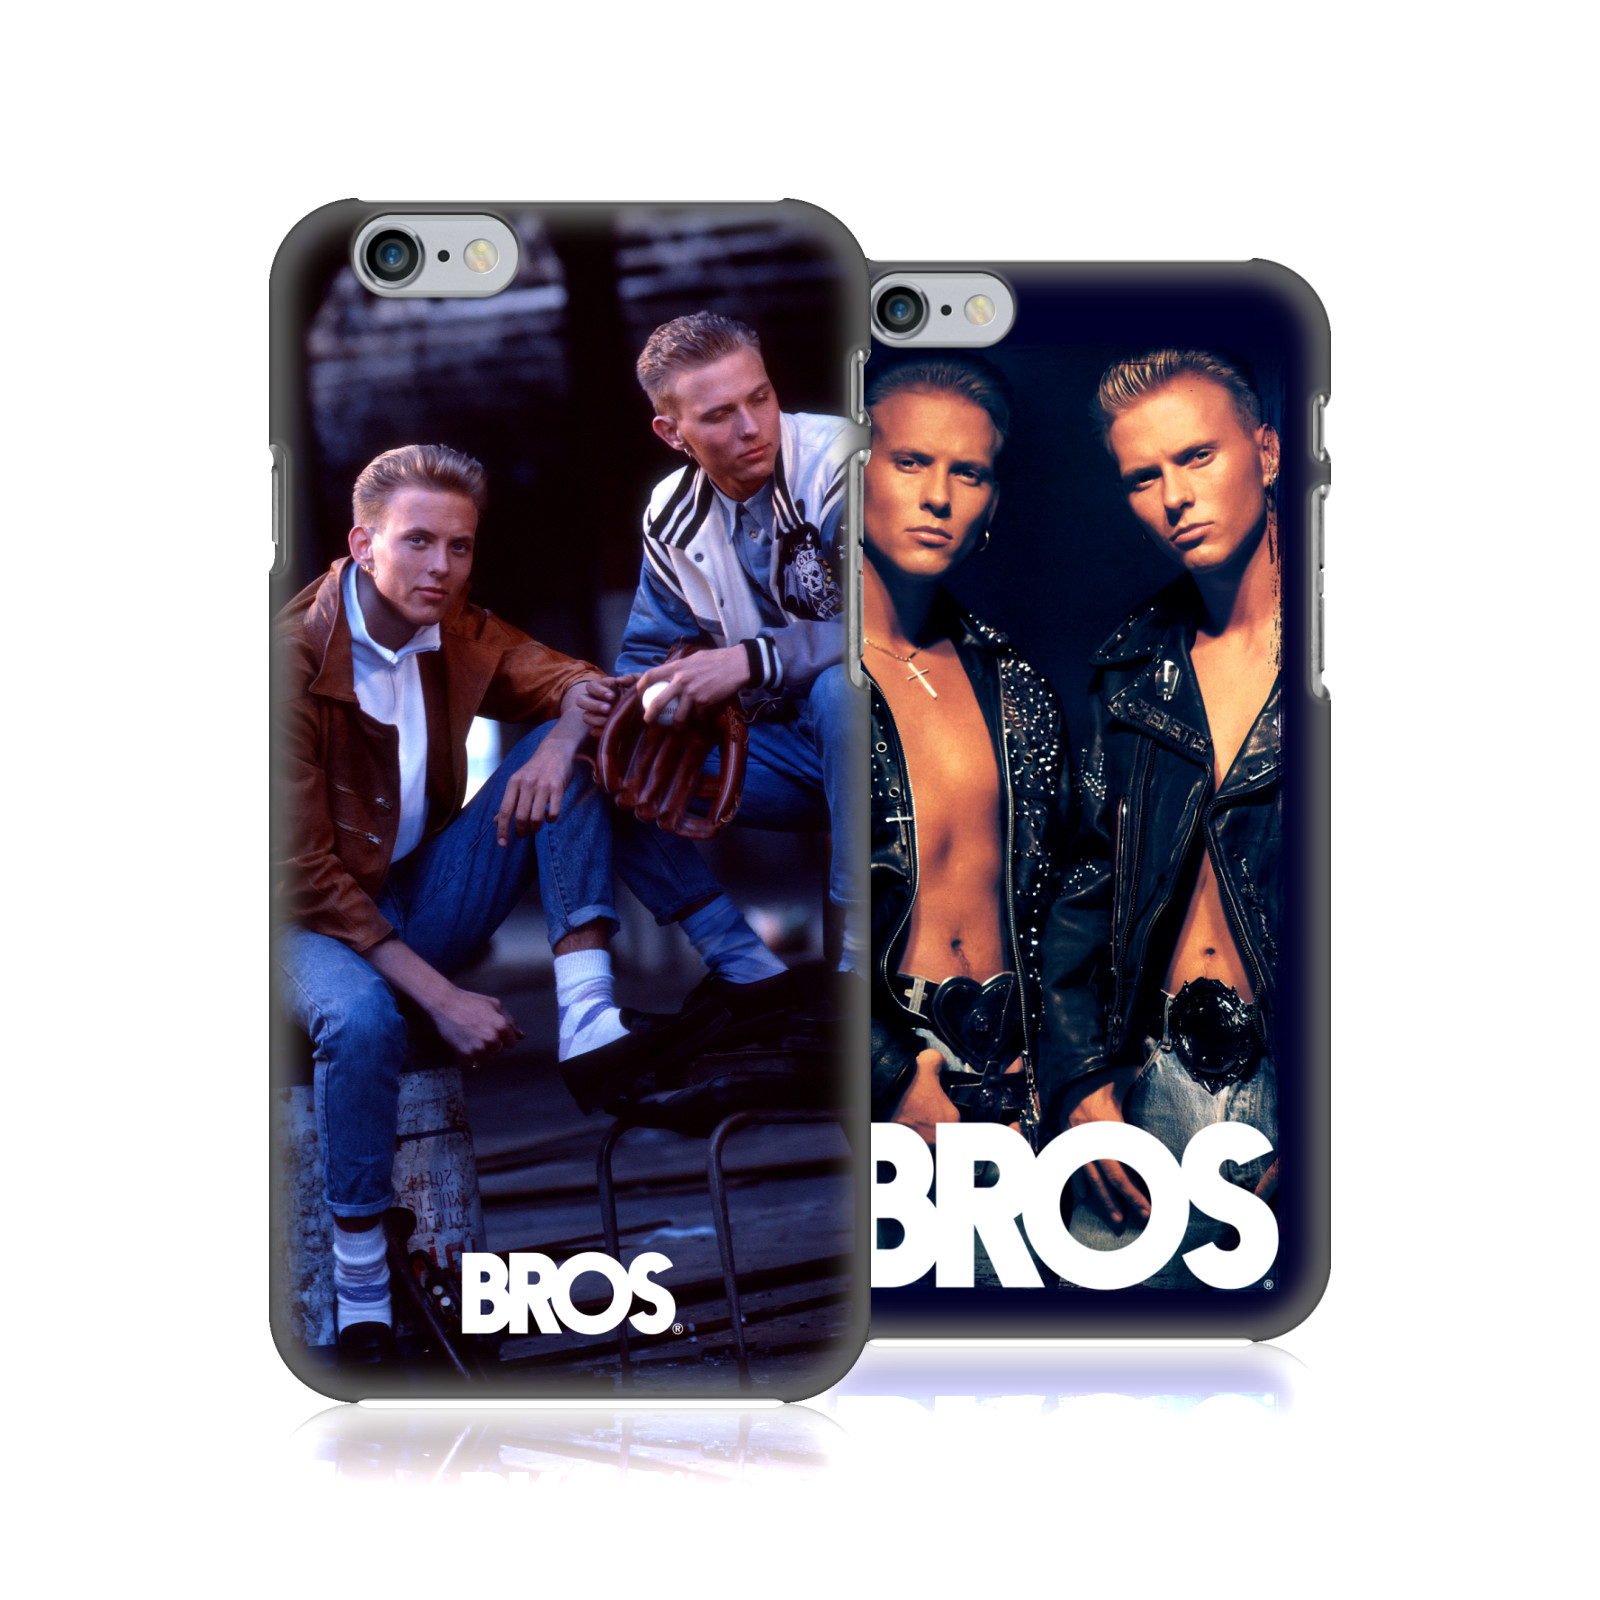 Bros Retro Photography